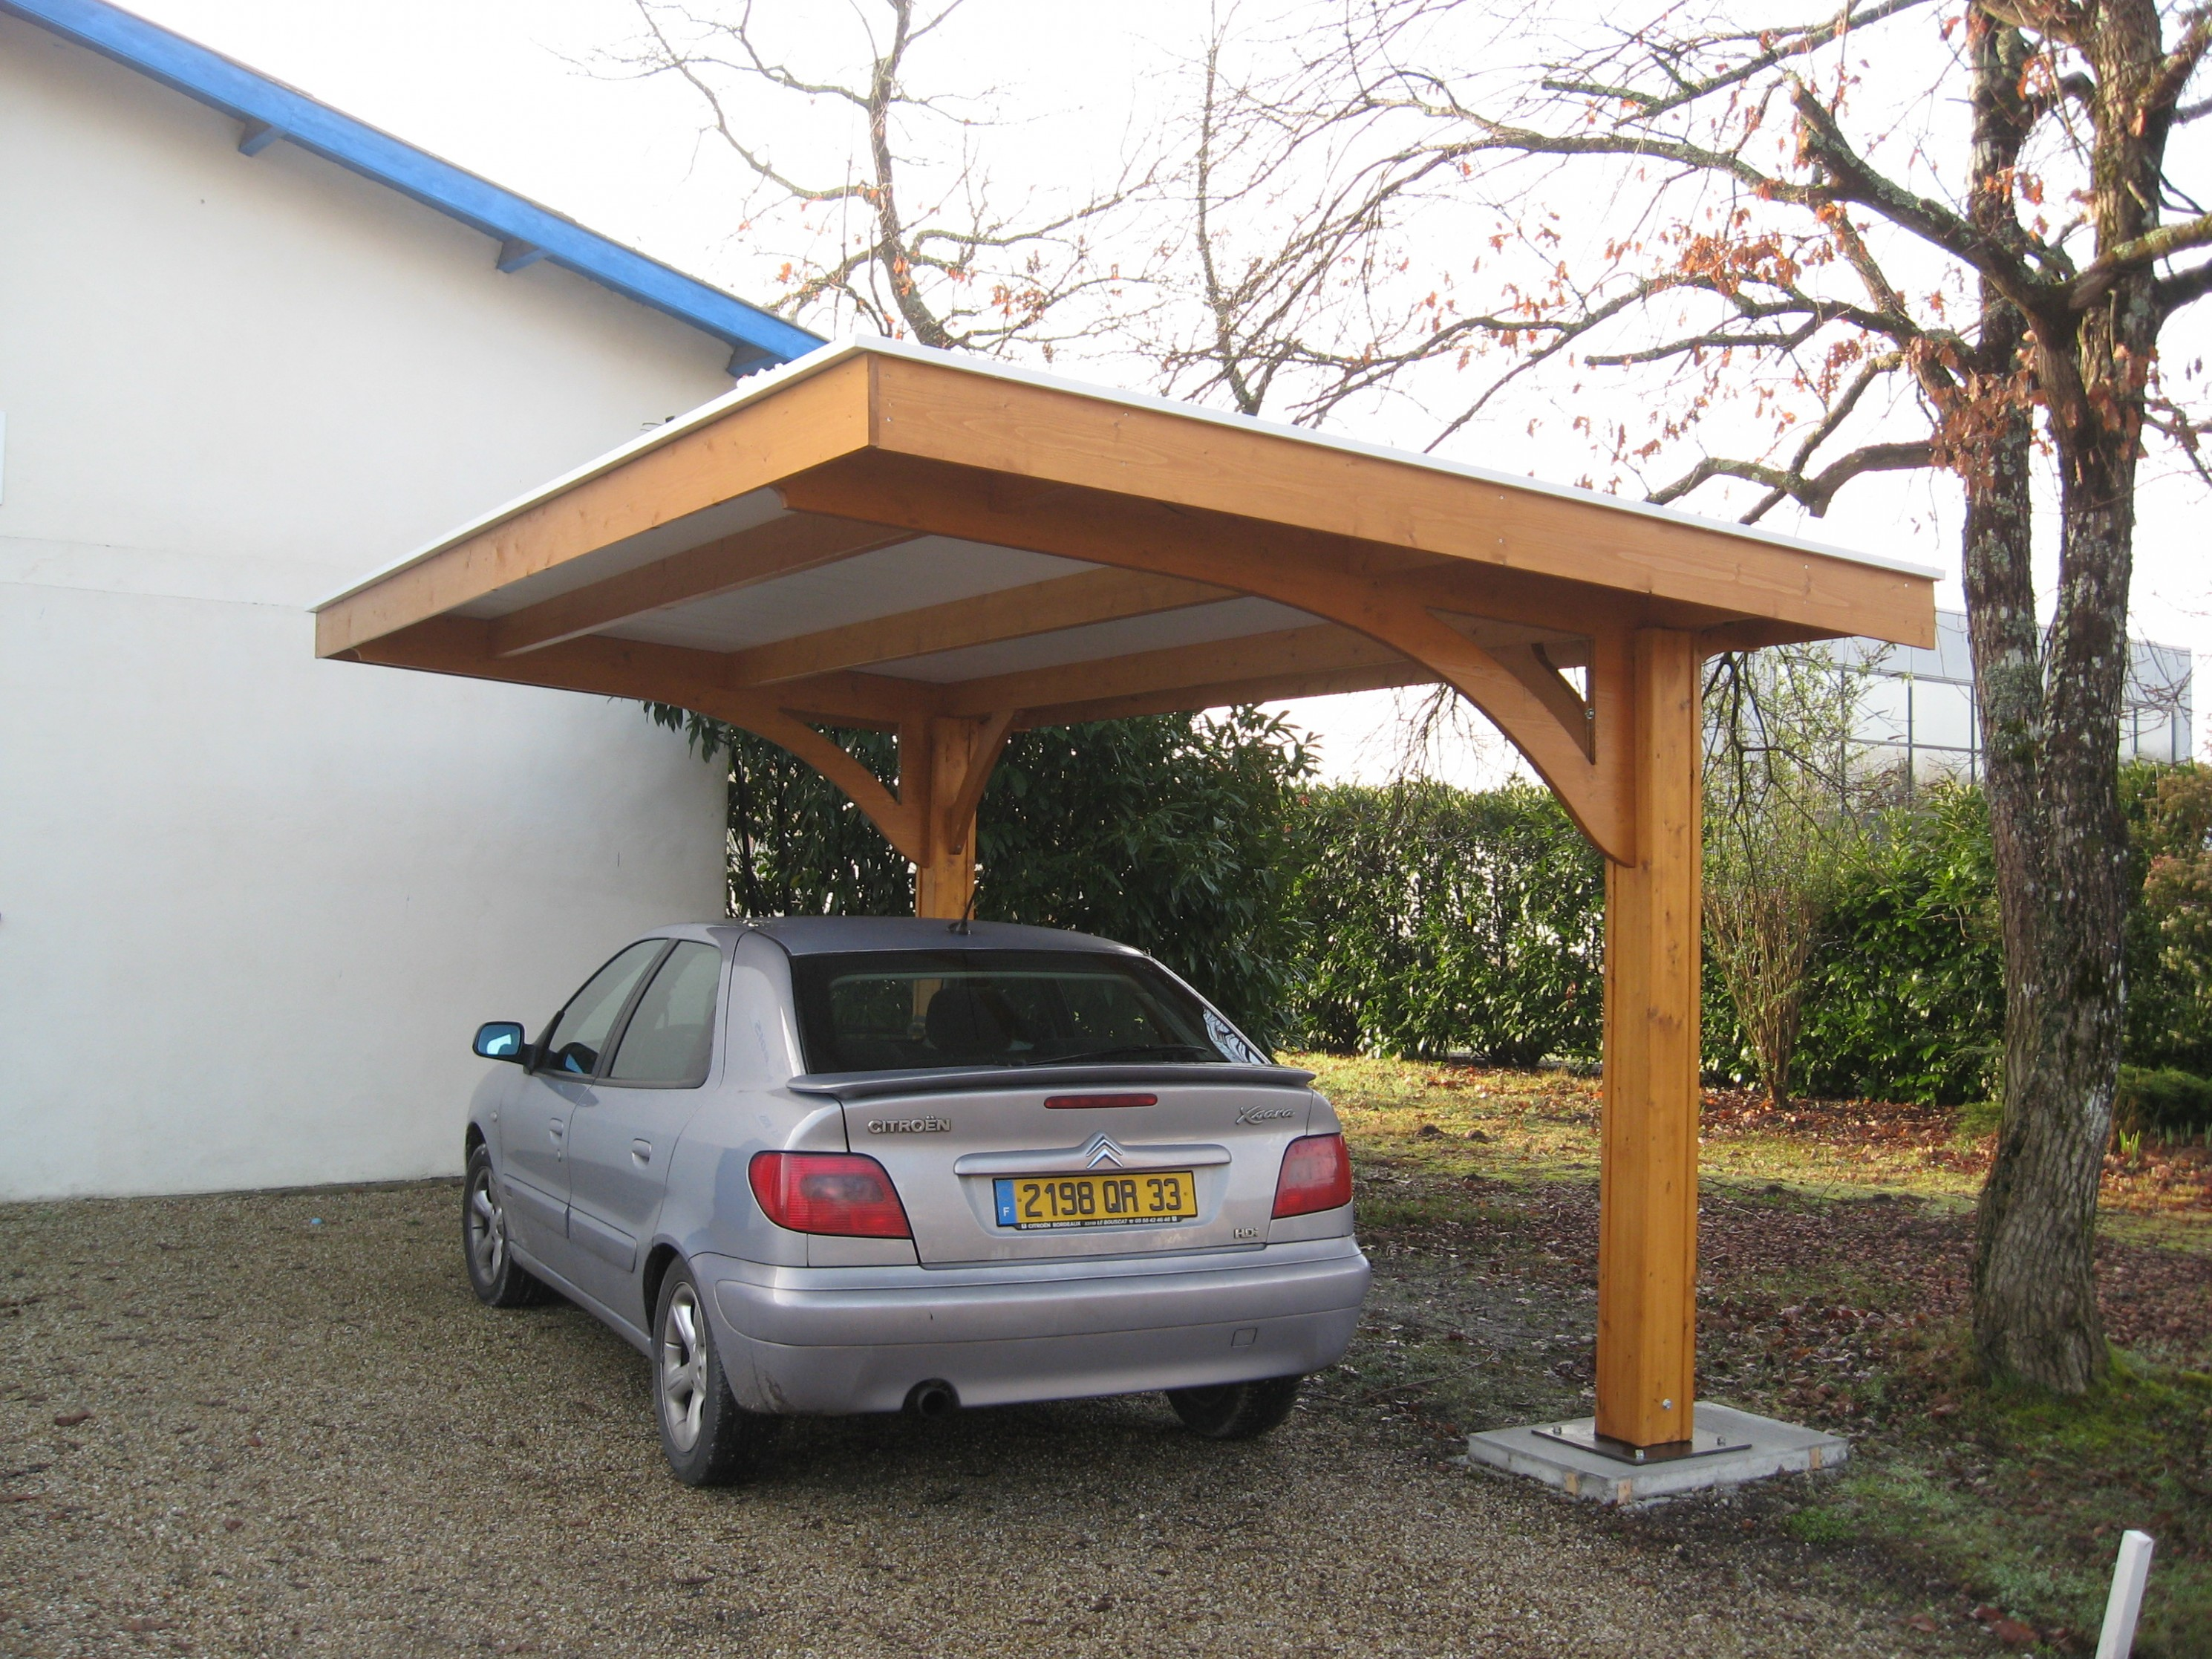 1517697257-brilliant-ideas-of-carports-second-hand-carports-self-standing-second-hand-carports.jpg